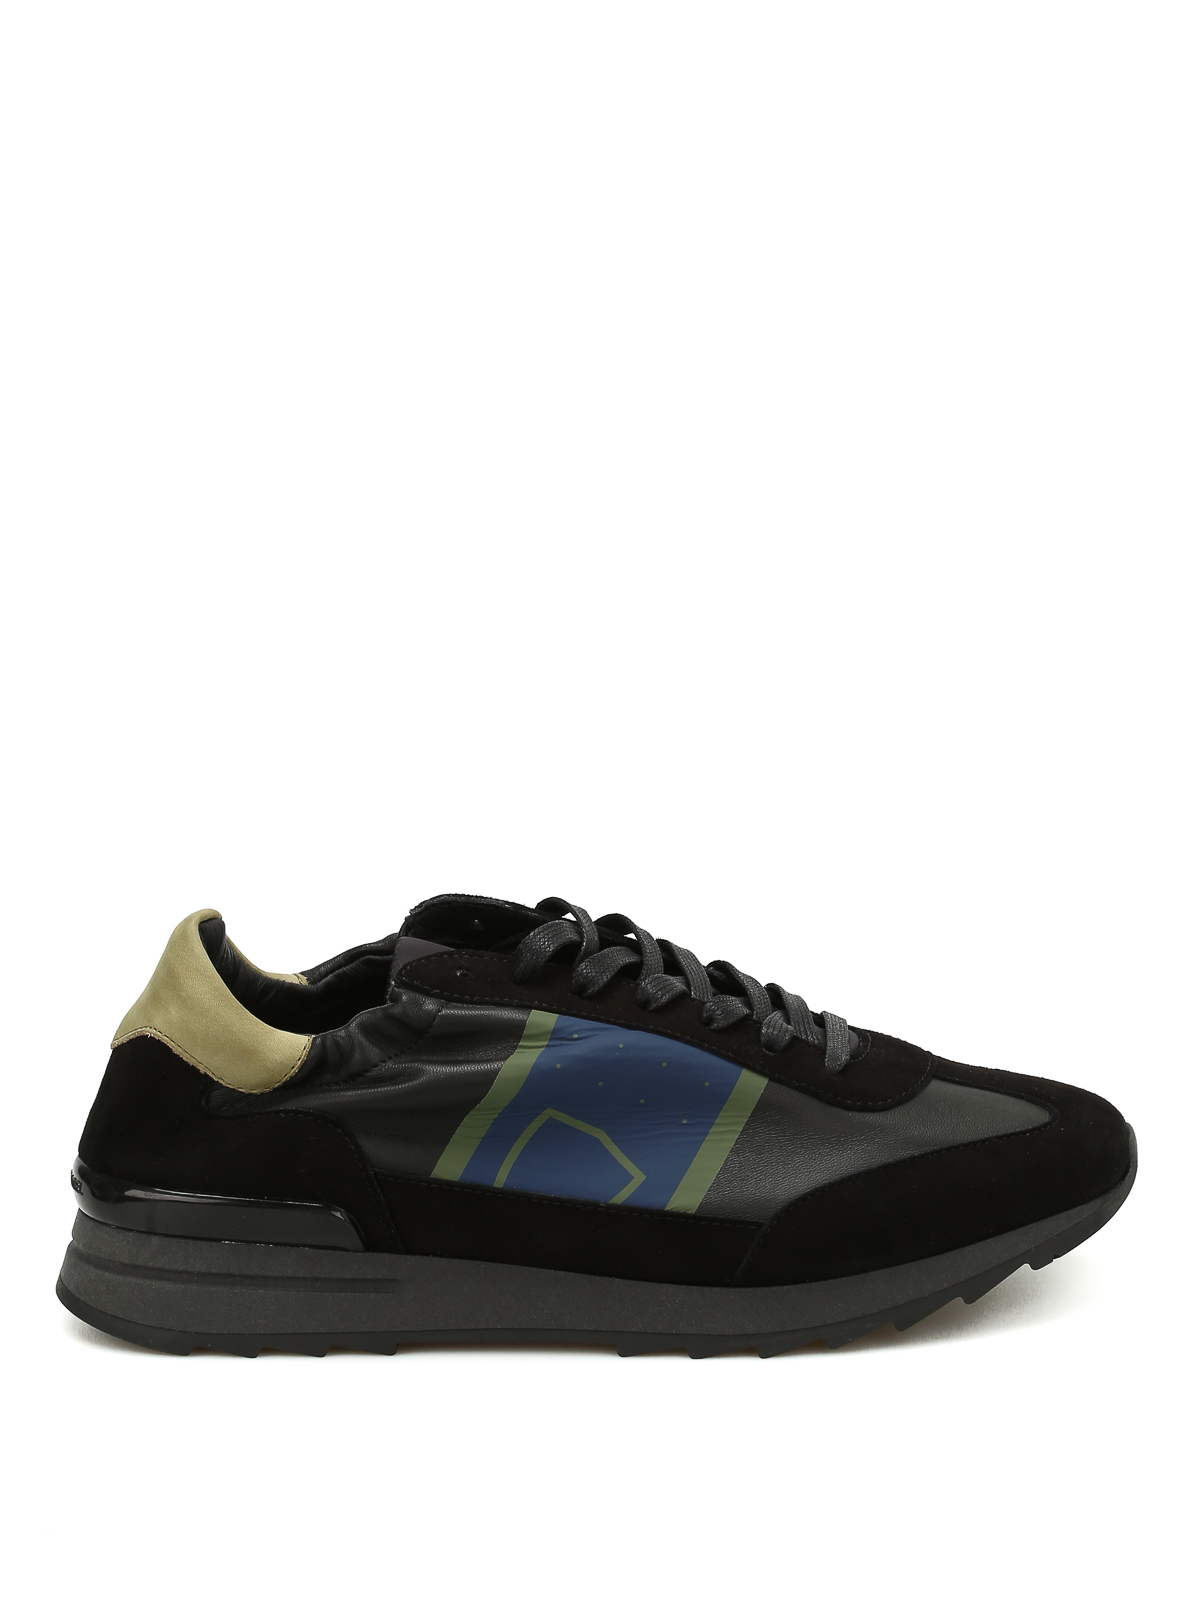 toujours sneakers by philippe model trainers ikrix. Black Bedroom Furniture Sets. Home Design Ideas